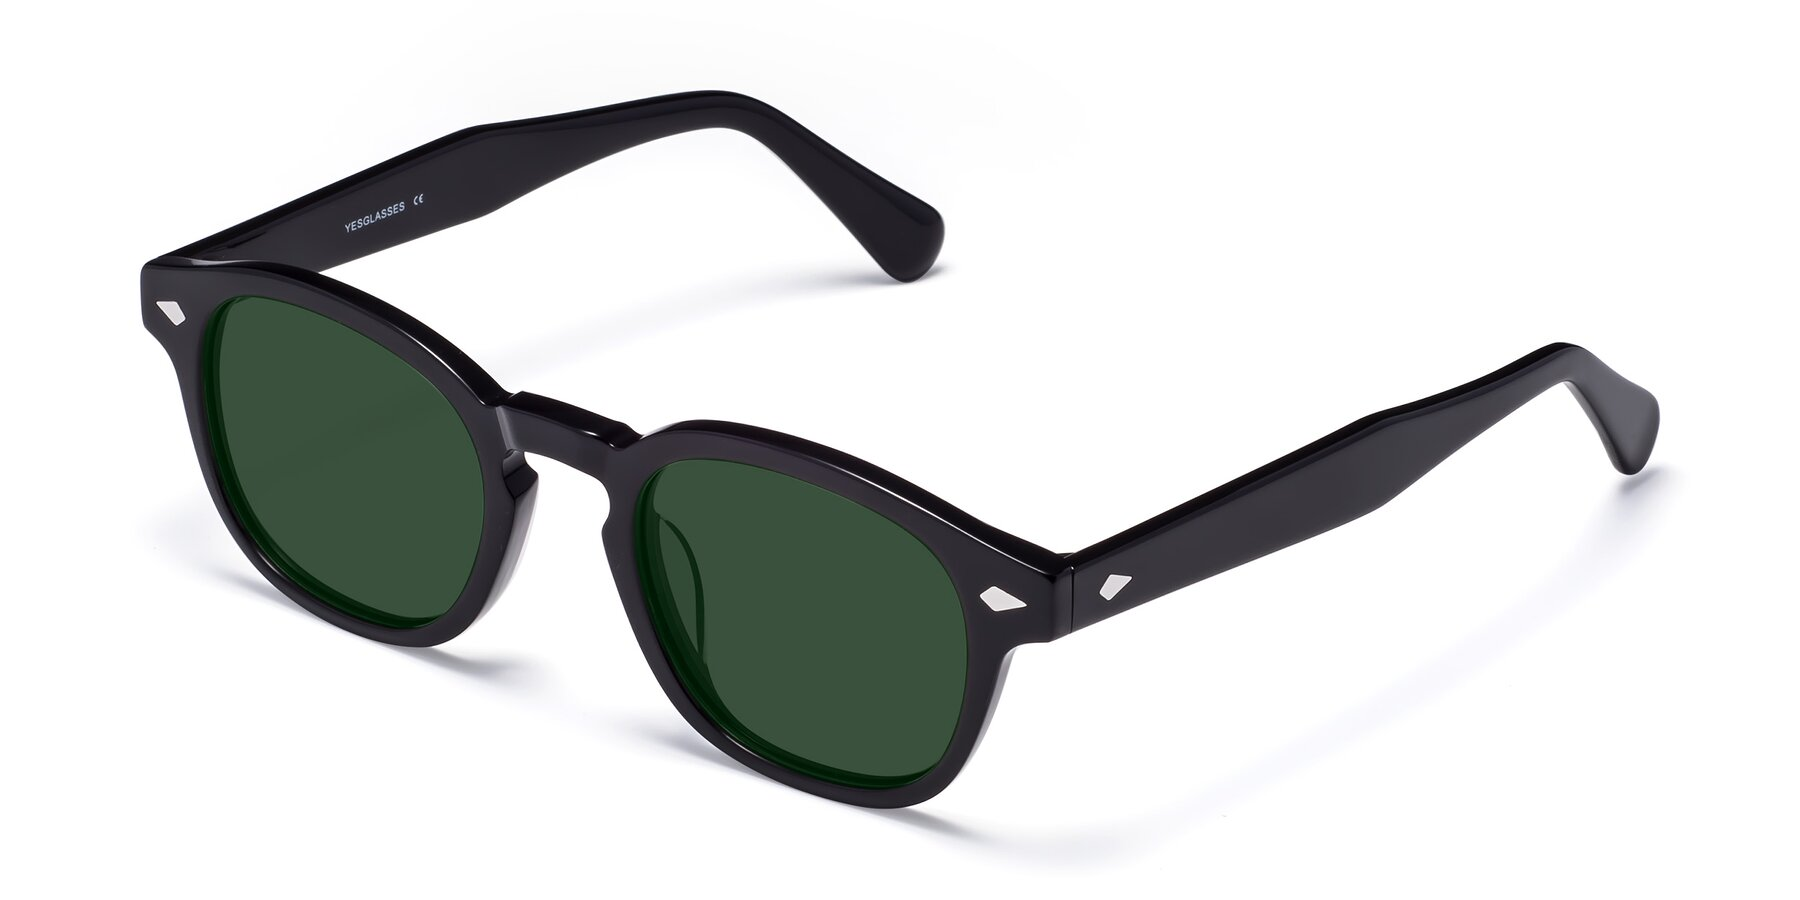 Angle of WALL-E in Black with Green Tinted Lenses